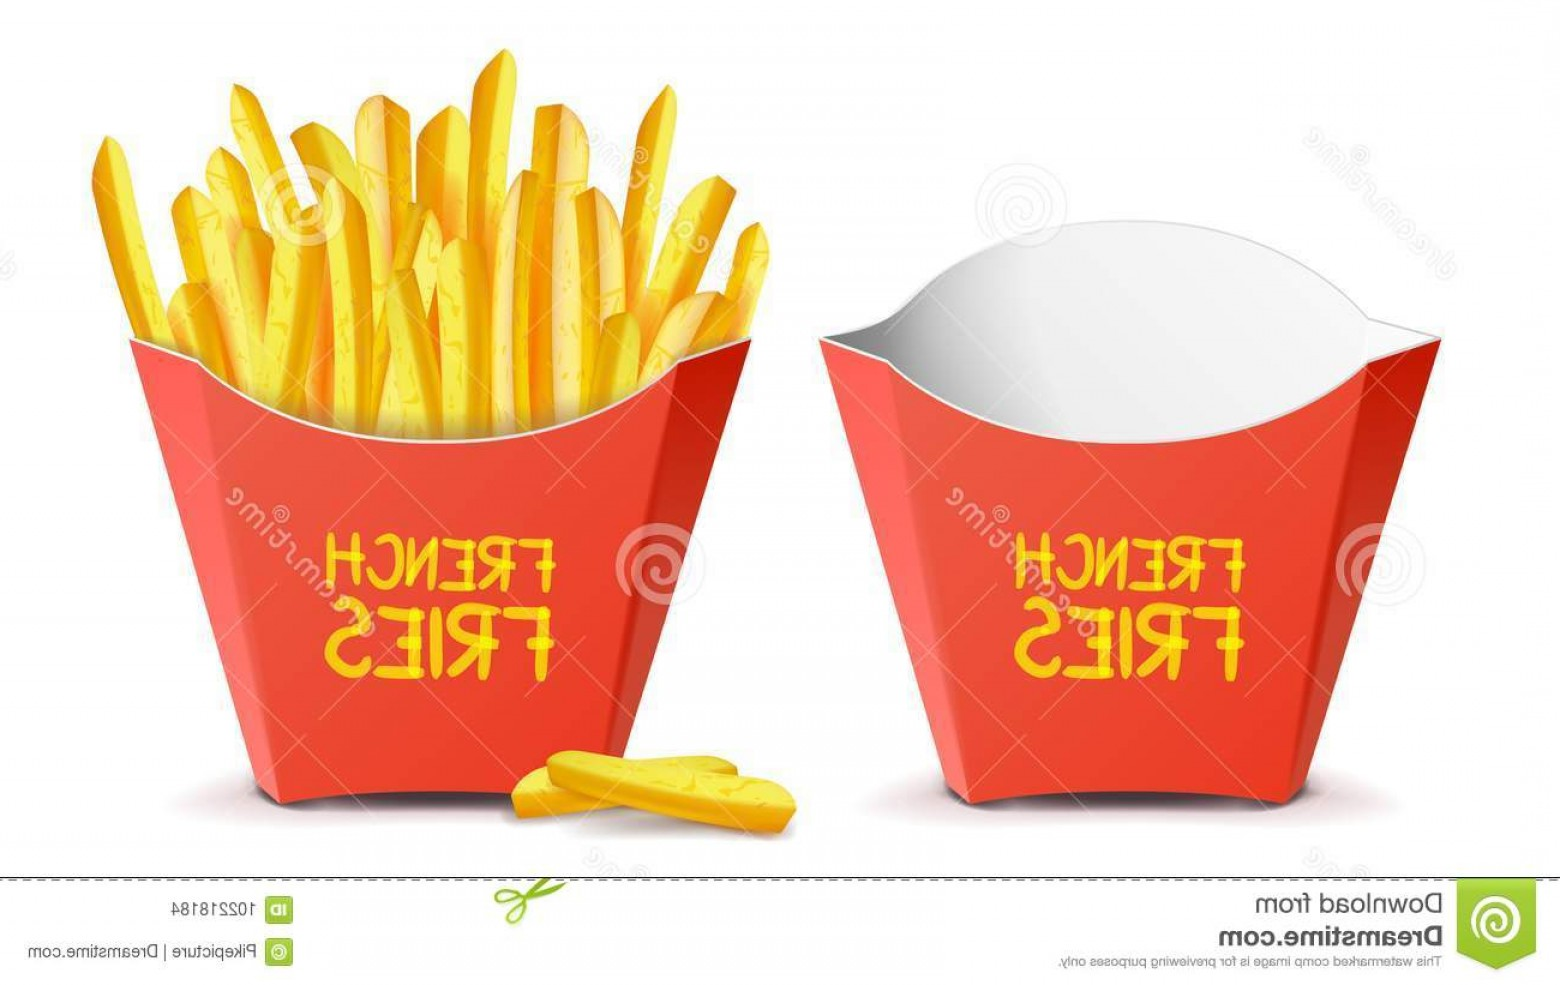 Fries Vector: Realistic French Fries Vector Red Paper Package Empty Full Isolated White Illustration Potatoes Tasty Fast Food Potato Image